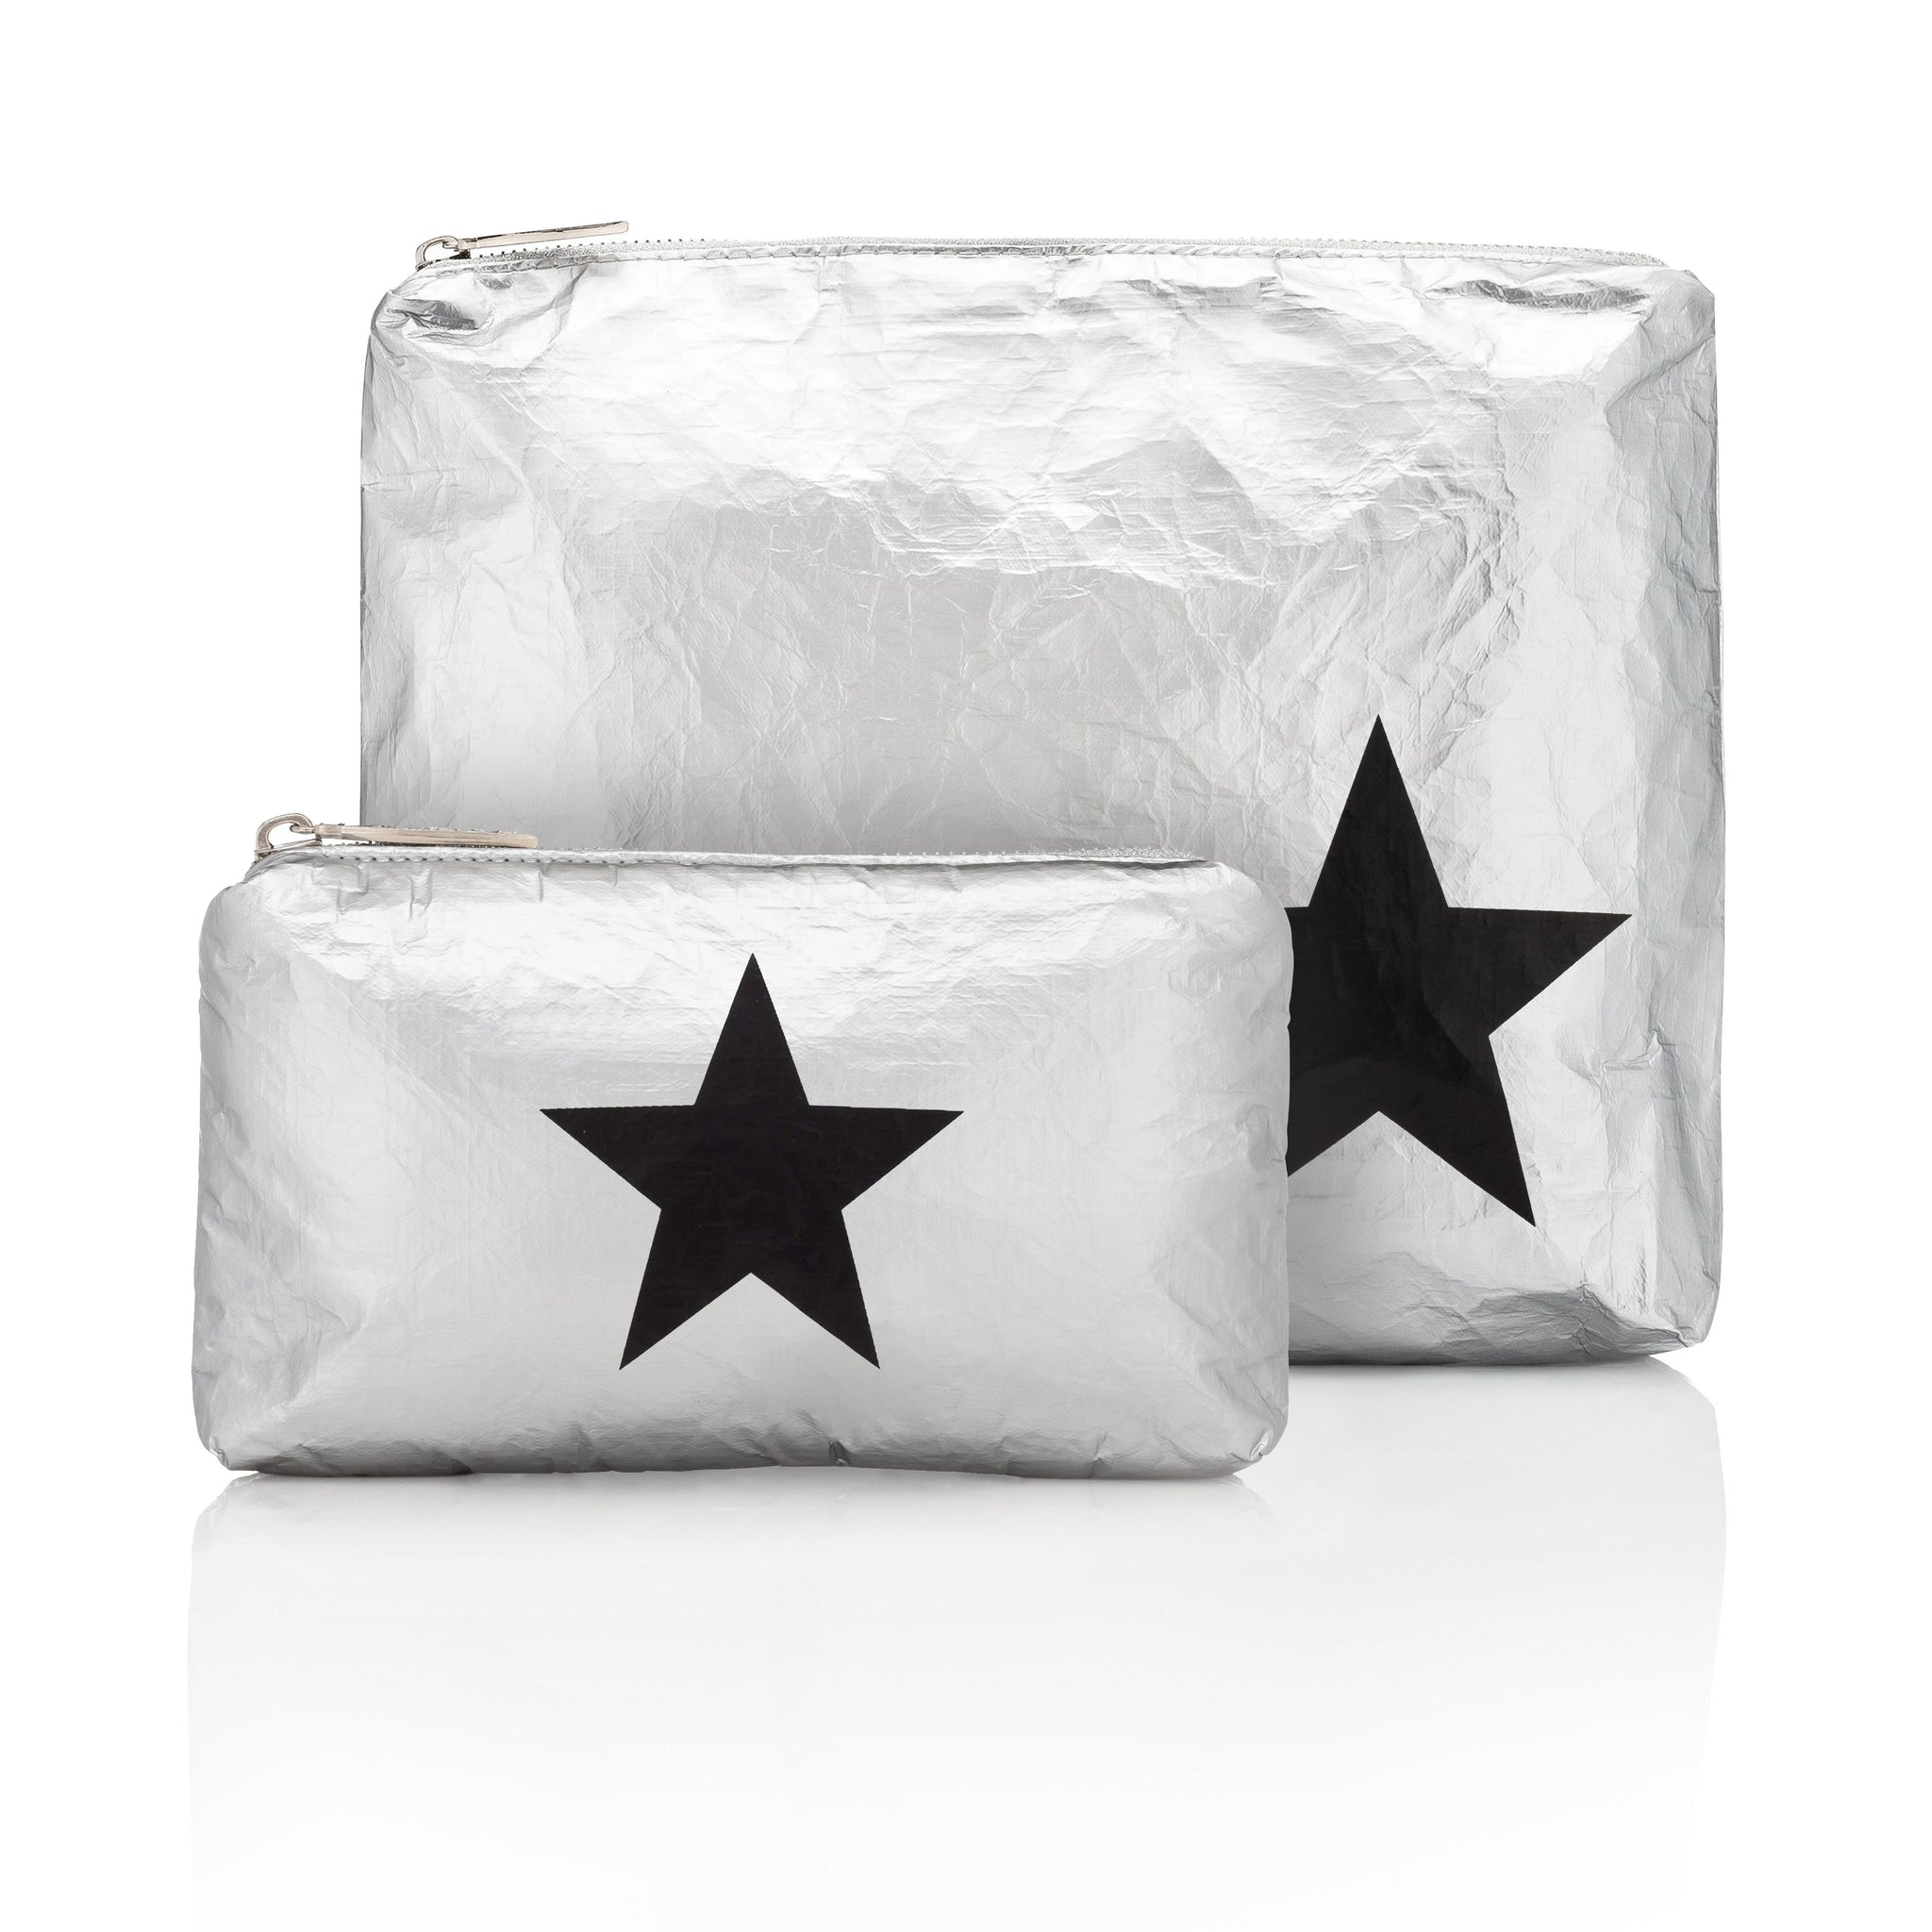 Set of Two - Silver with Black Star